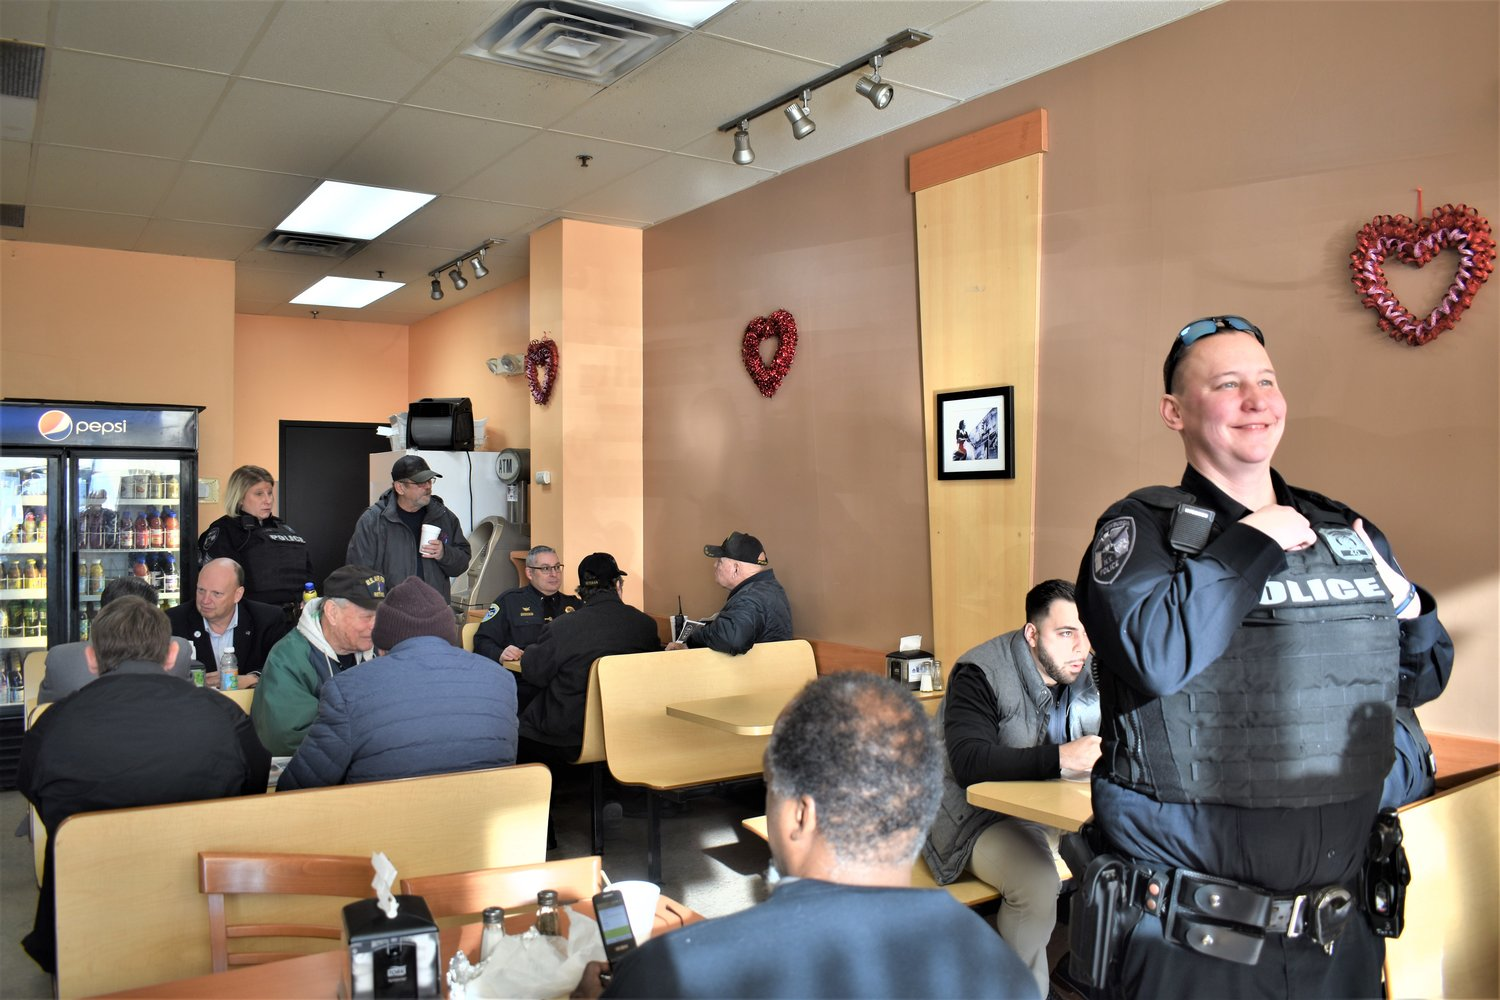 Officers and residents mingle during Coffee with a Cop on Thursday.